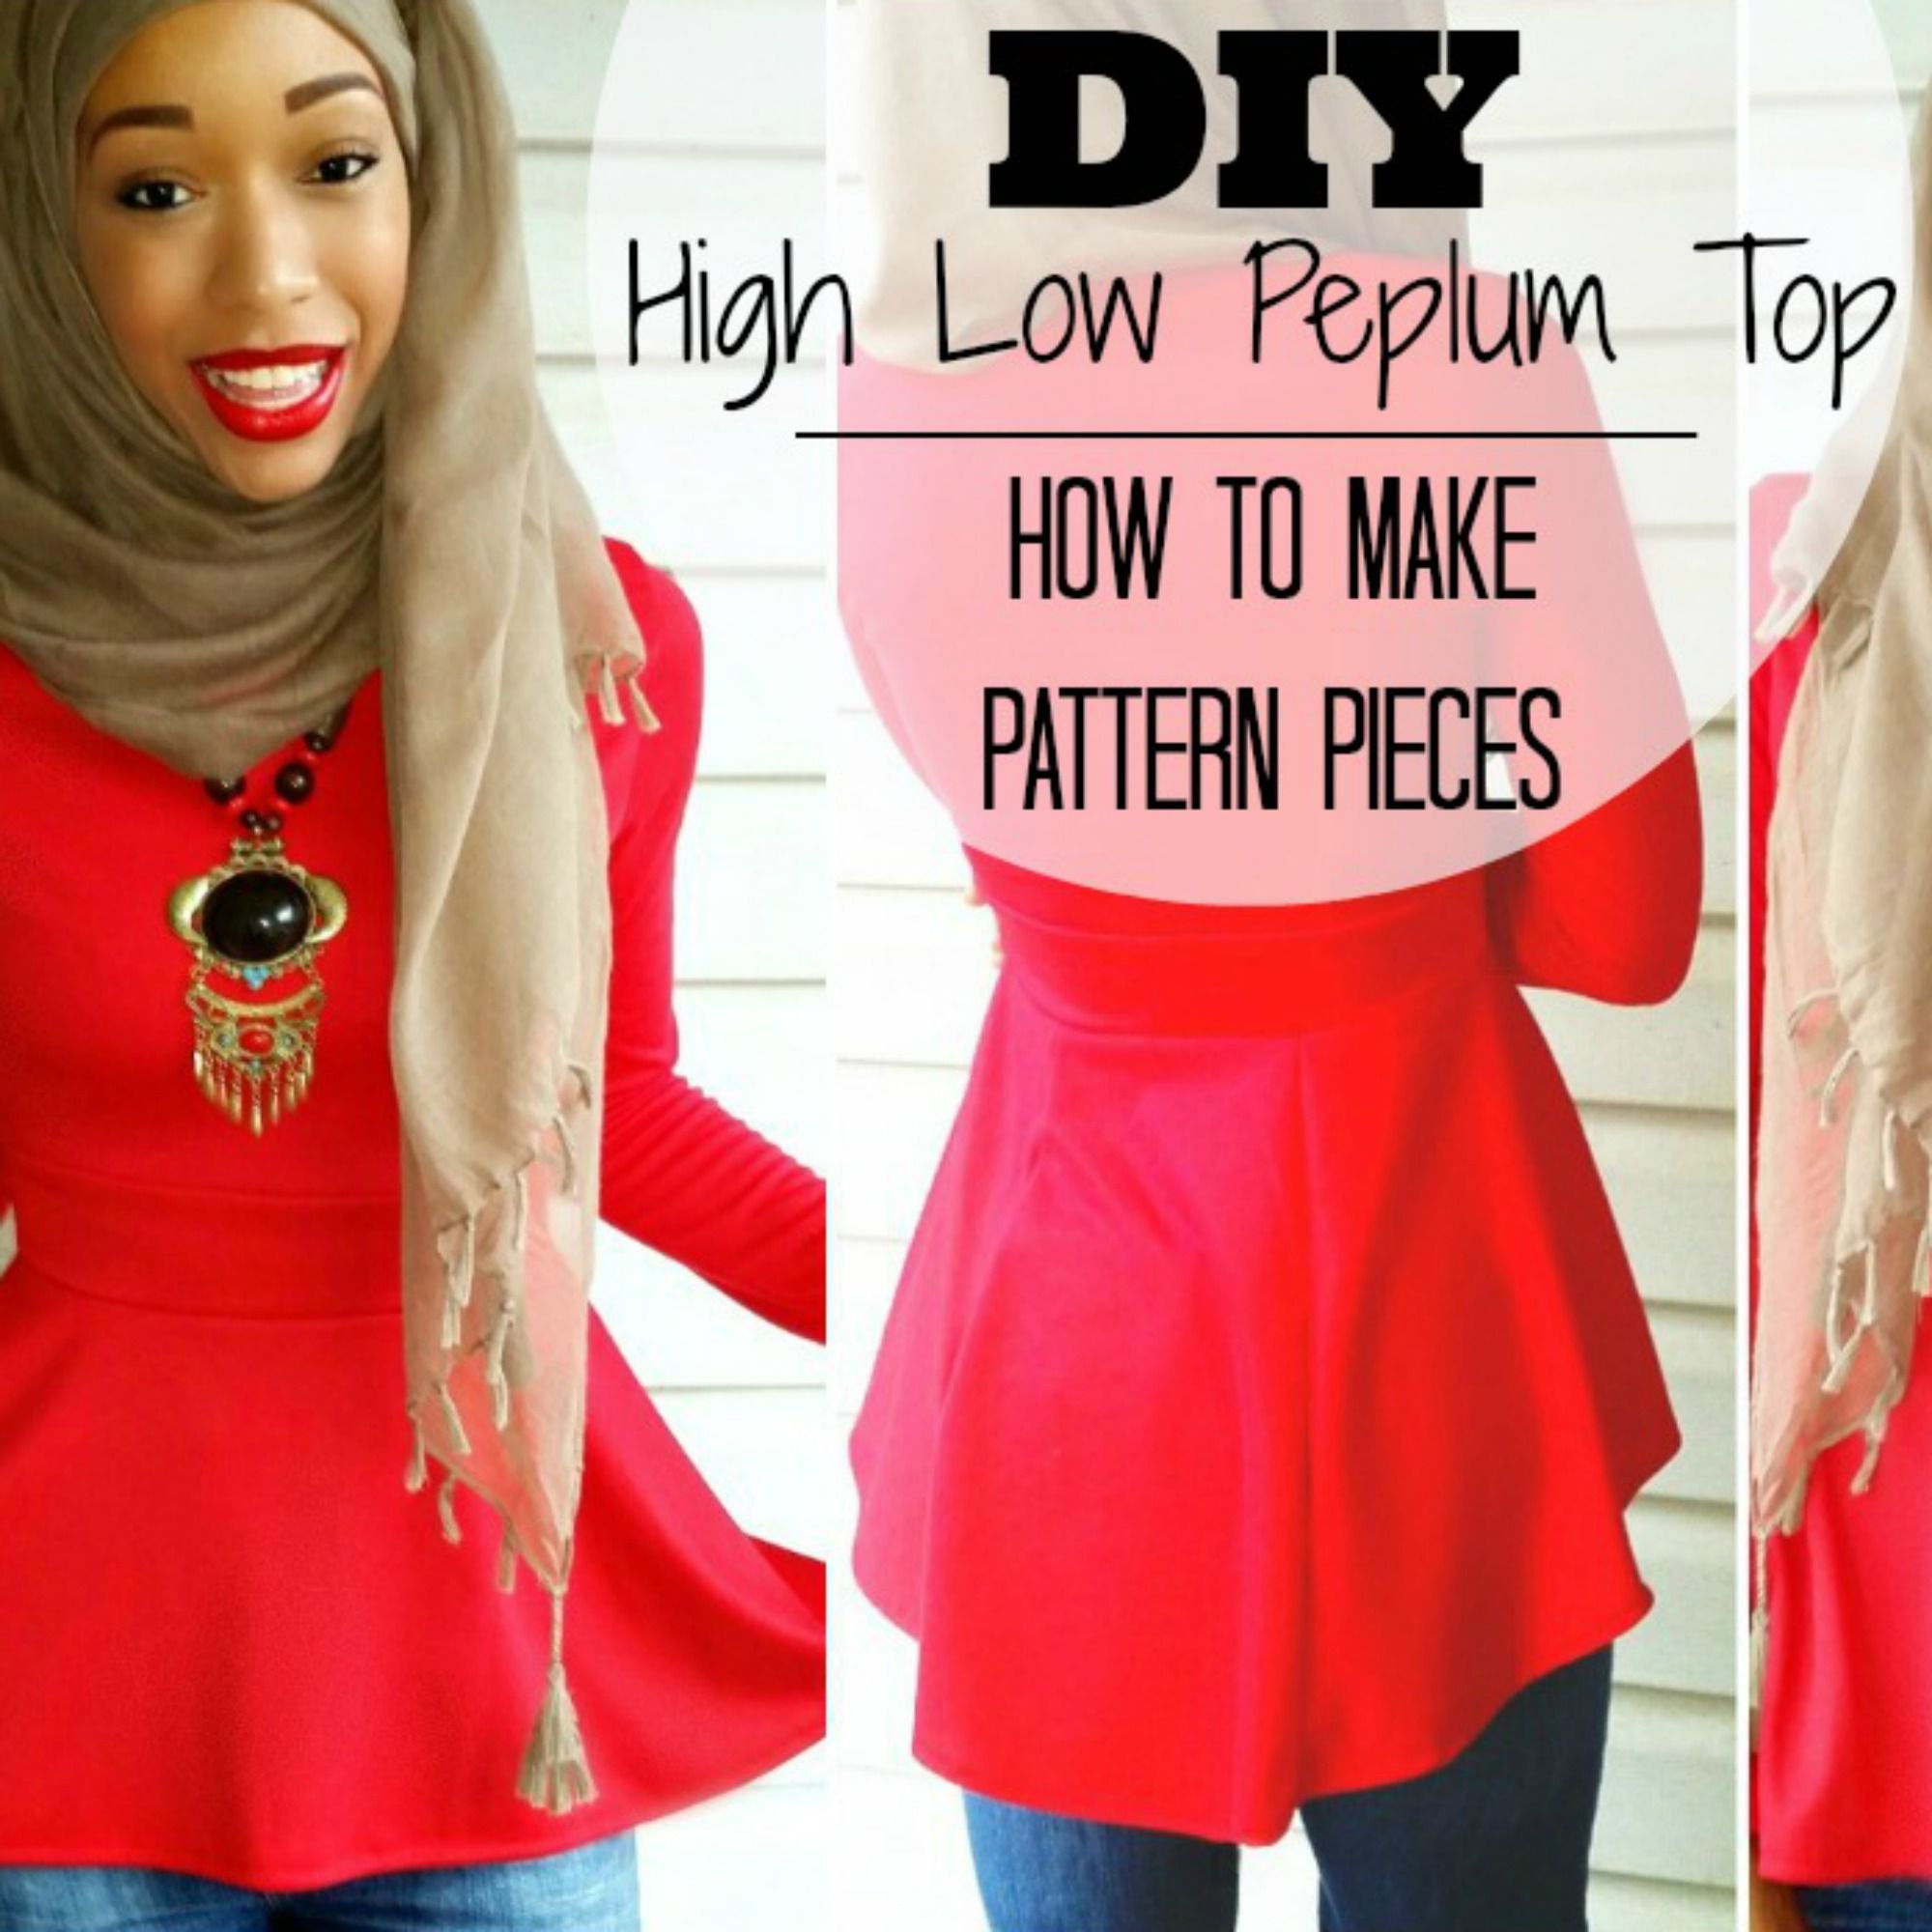 Diy Nadira037 High Low Peplum Tutorial And How To Make Your Own Pattern Pieces Diy Clothing Diy Sewing Tutorials Peplum Top Pattern